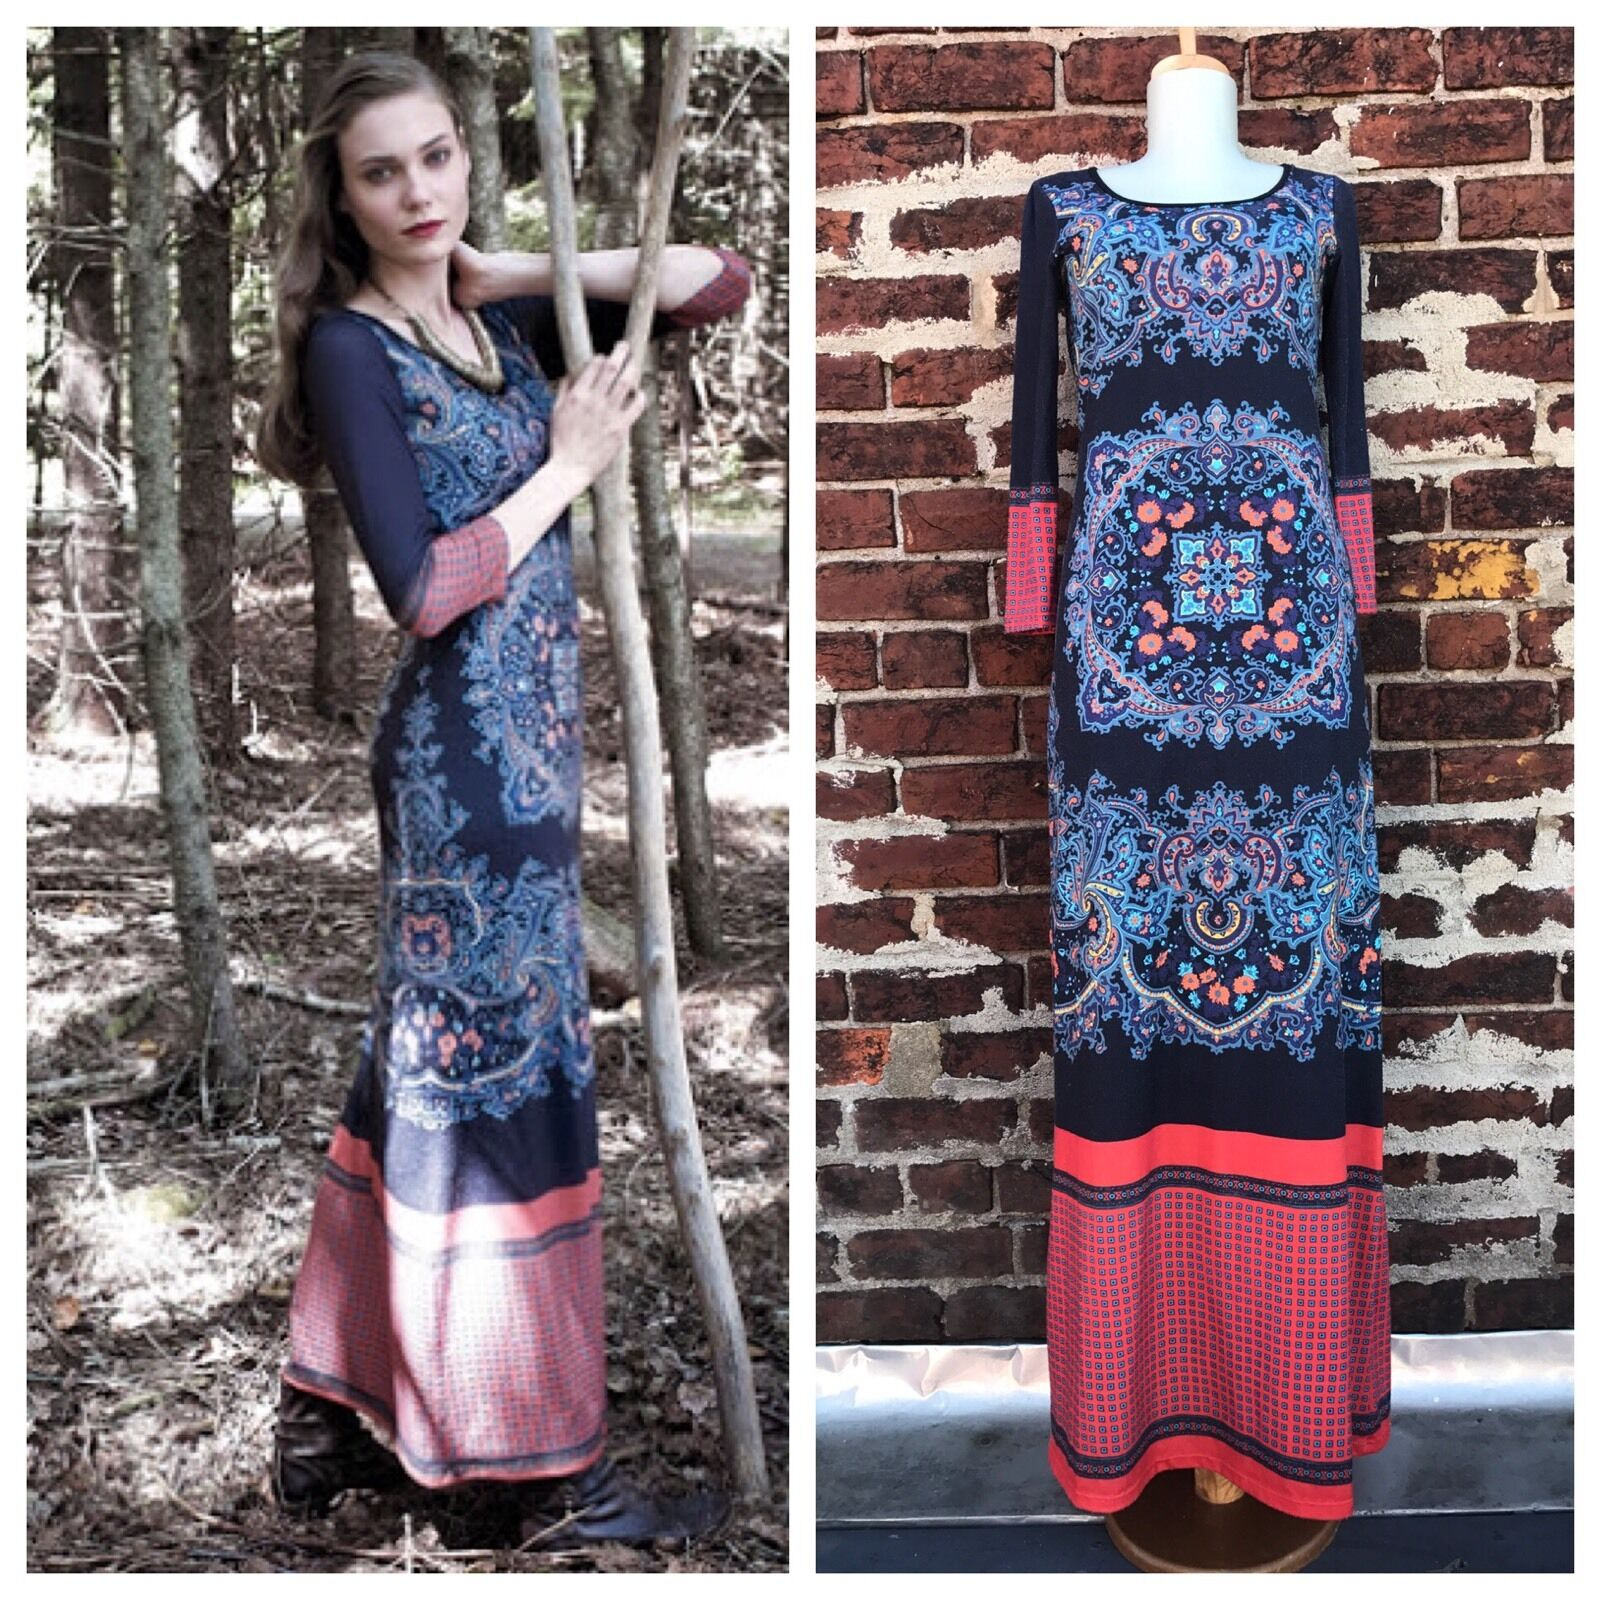 Anthropologie XS Rare Dream Daily Long Jersey Knit Fractal Medallion Maxi Dress